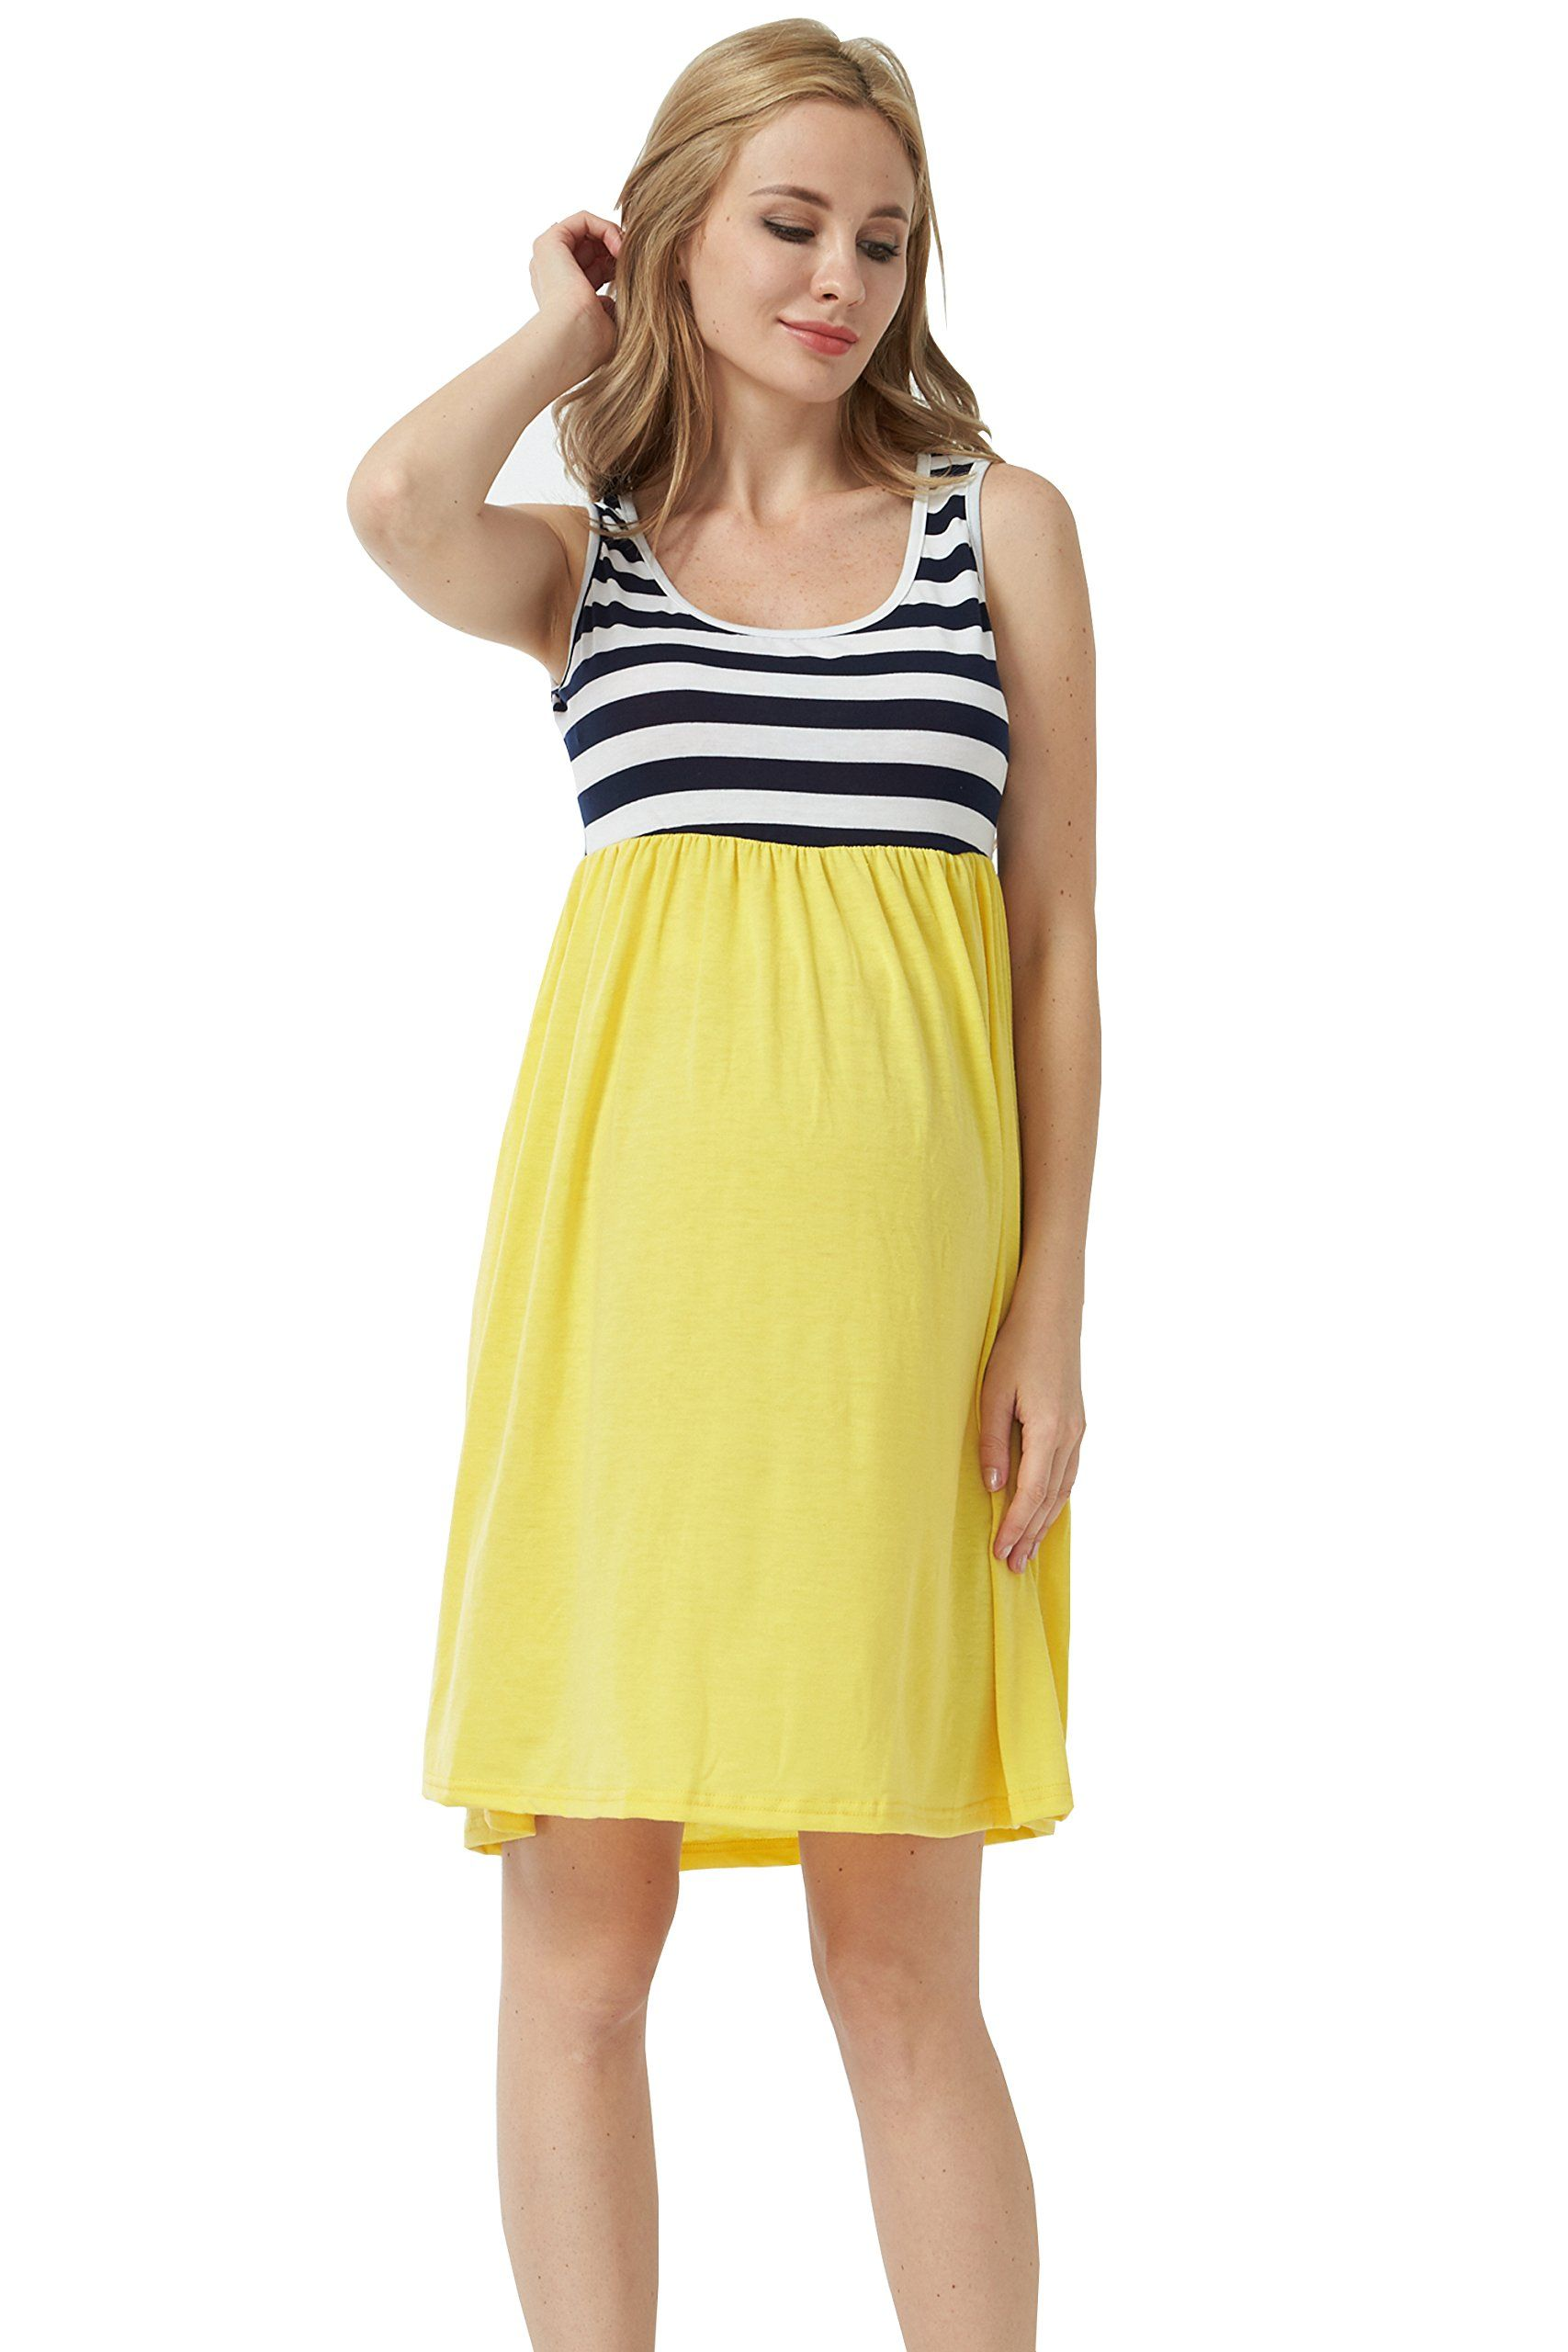 6f4a85efda6 Maternity Outfits - close-fitting maternity maxi dress   Maternity Maxi  Dress Pregnancy Tank Tops Knee Length Stitching Color Block Stripe Skirt  Yellow ...